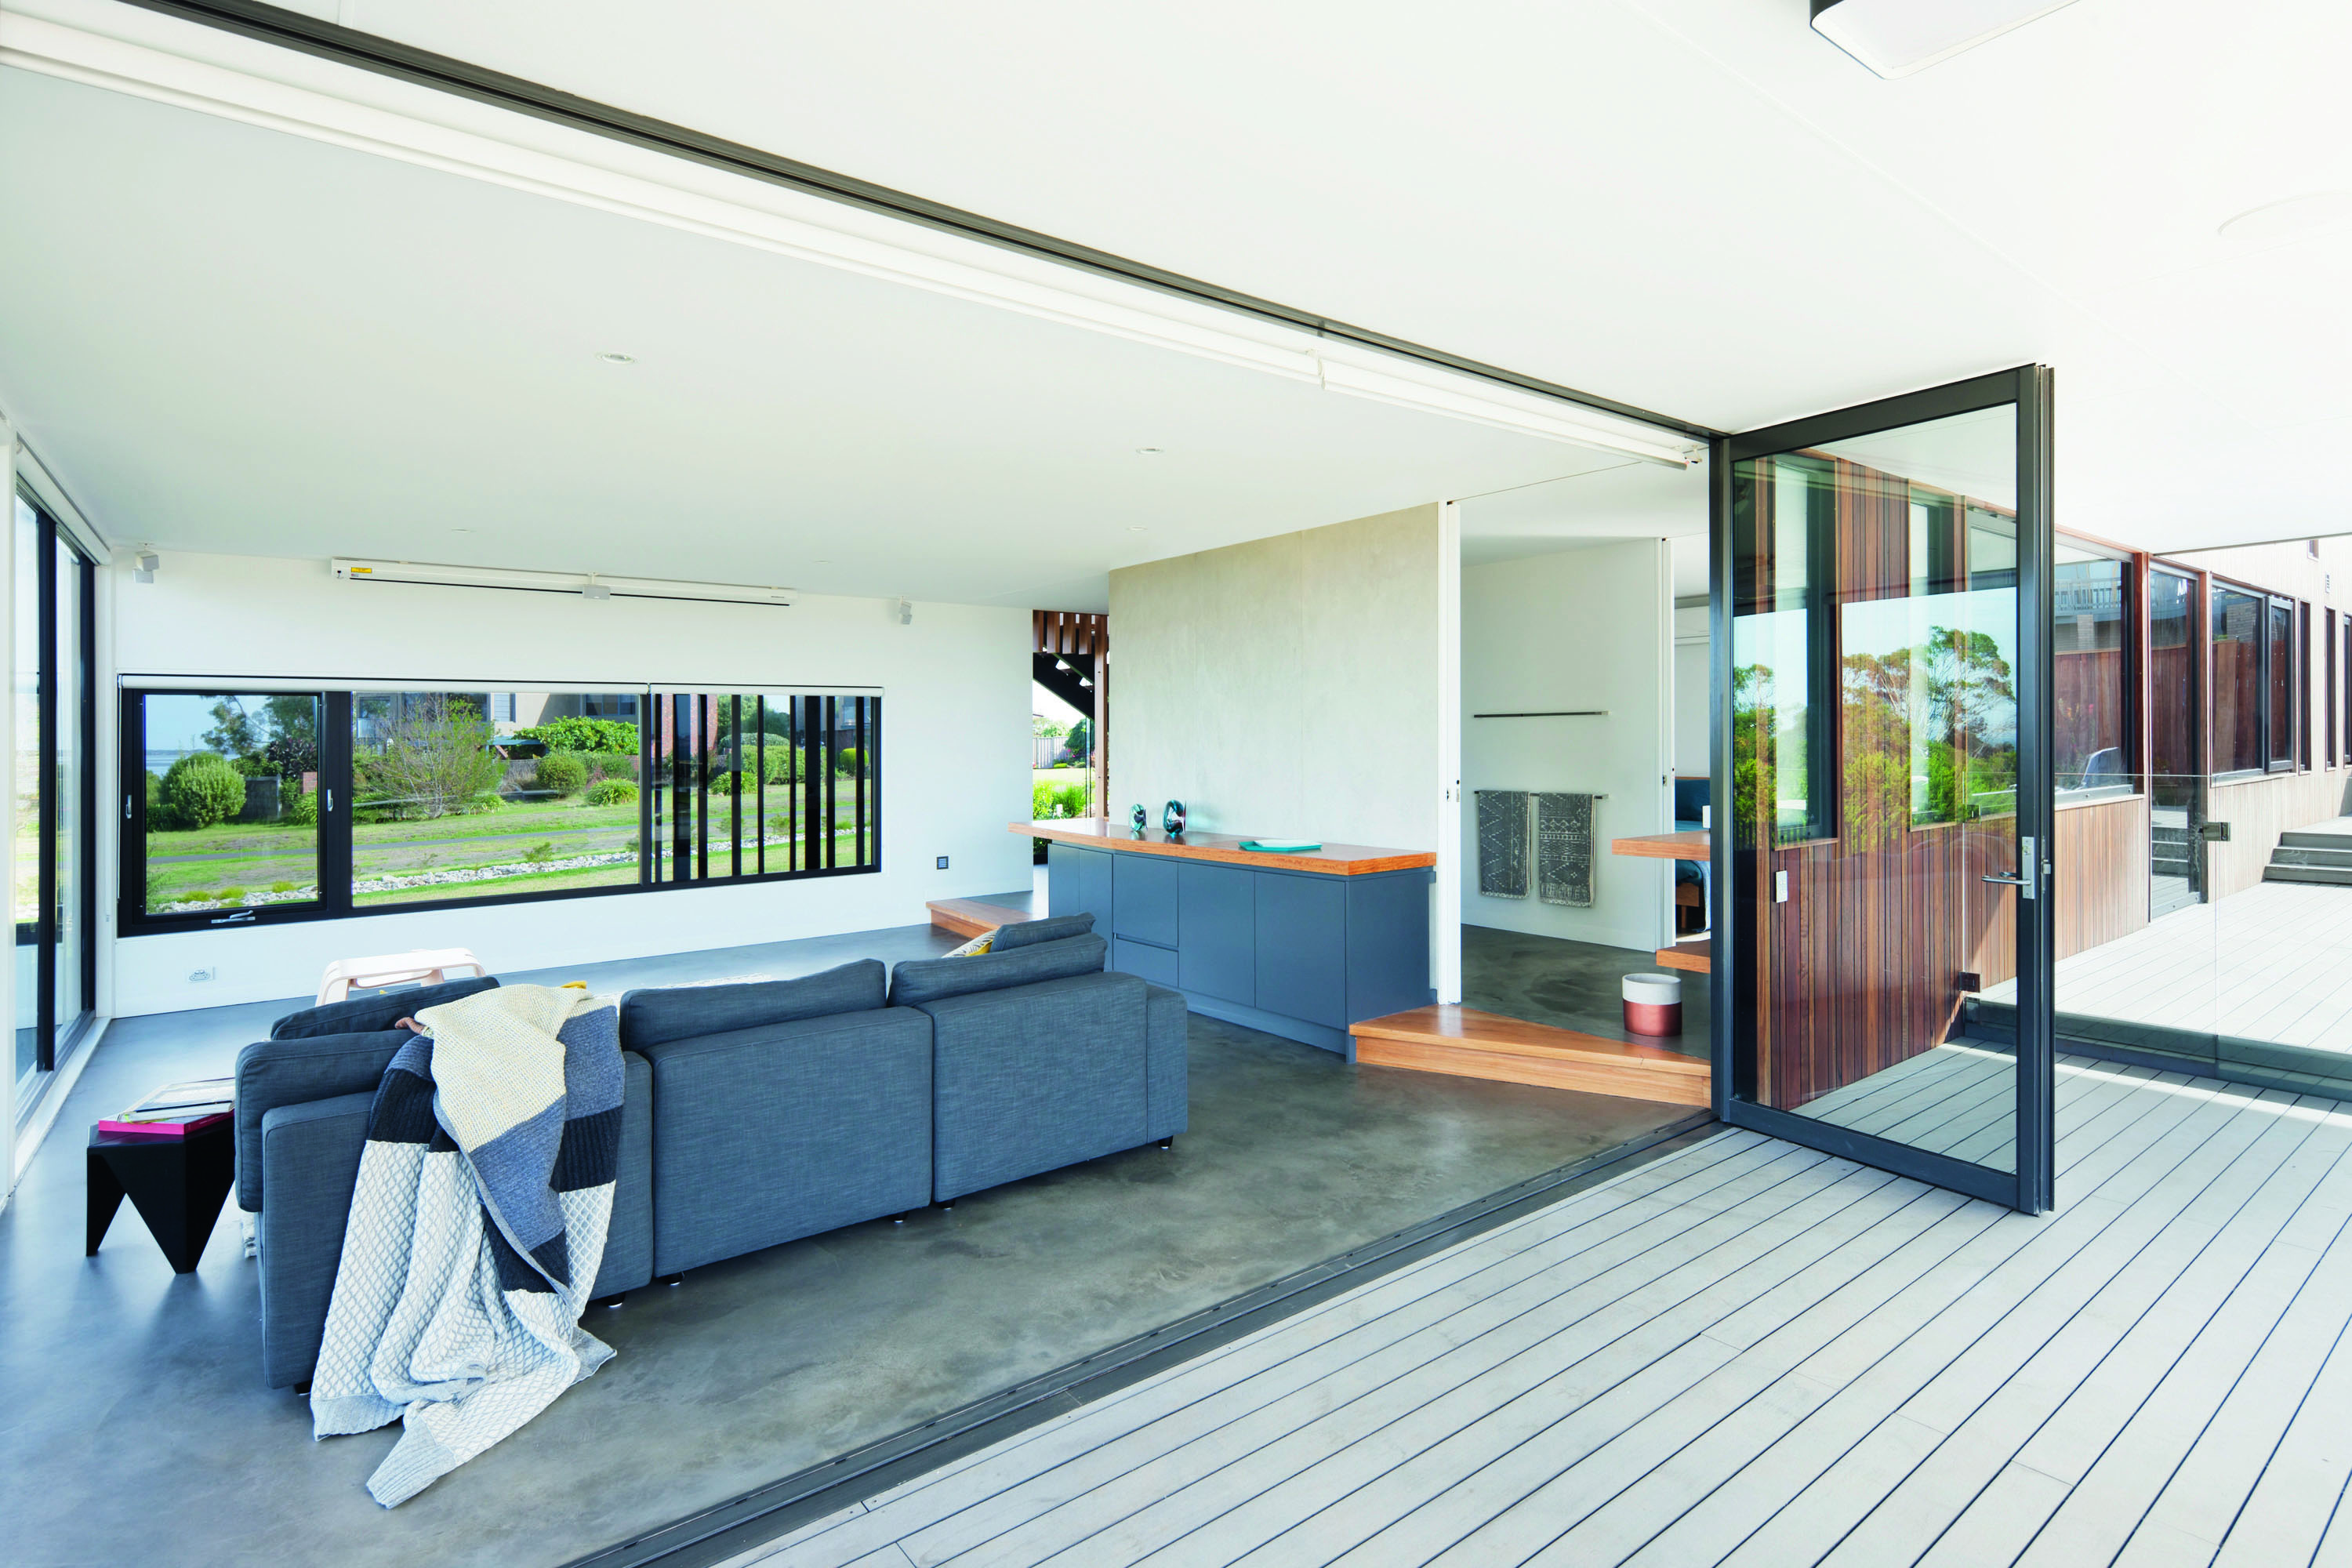 Grand Designs Australia: Black Box - the open plan nature of the house beckons the outdoors in